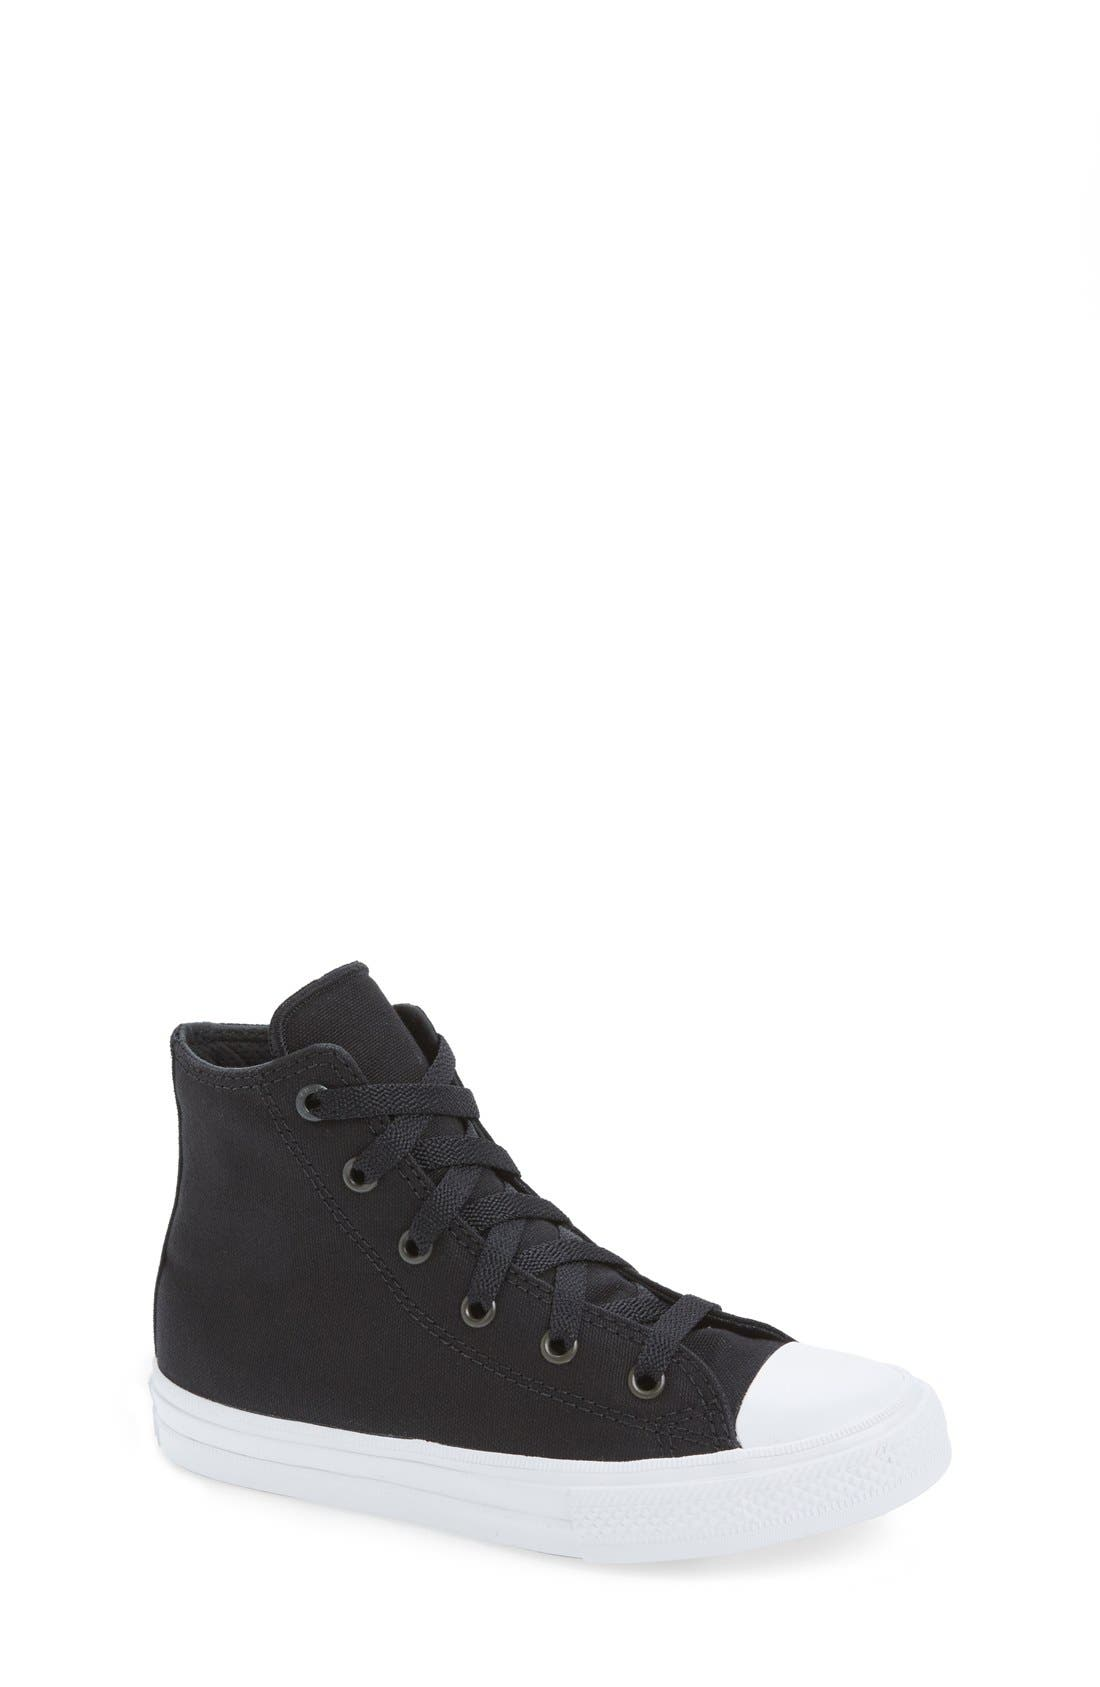 CONVERSE Chuck Taylor® All Star® II High Top